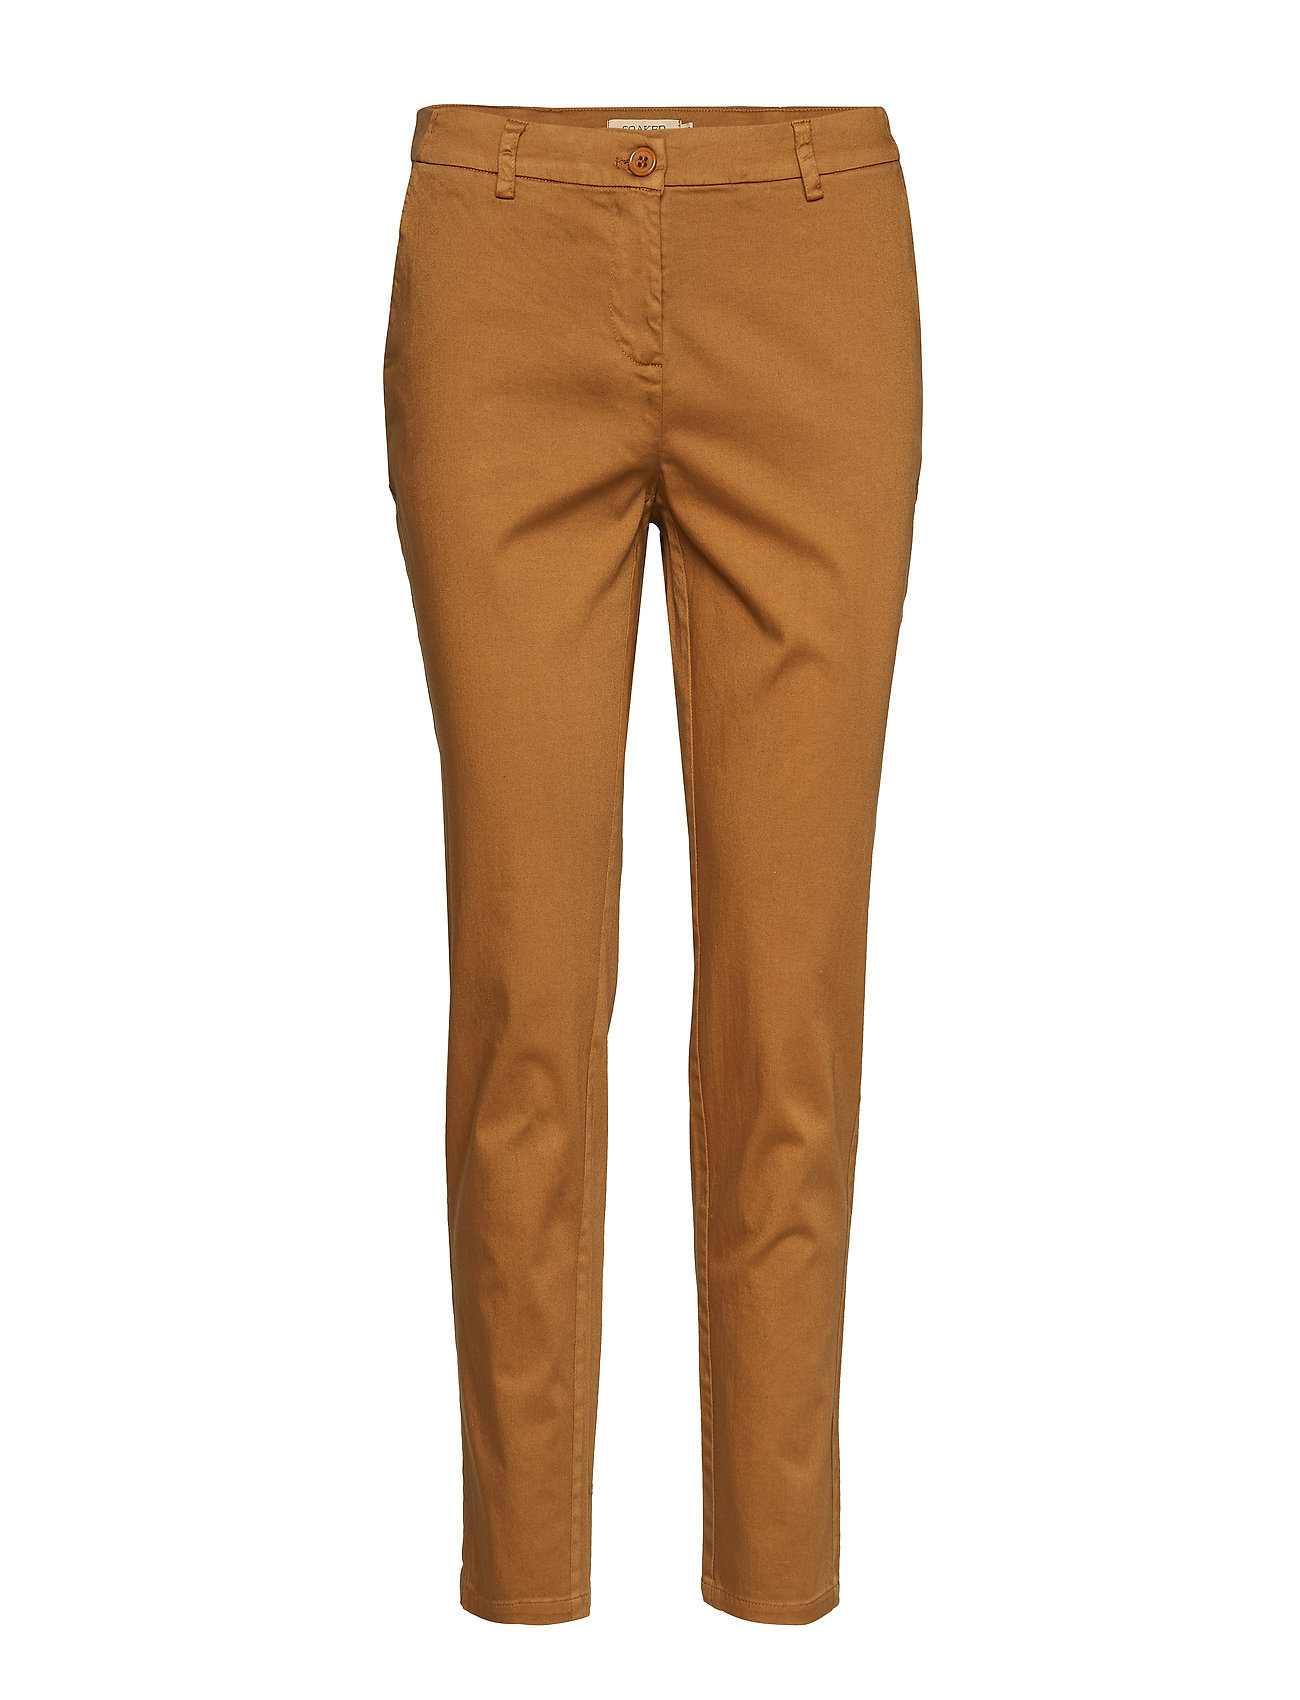 Soaked in Luxury Lillan Chino Pants - PECAN BROWN